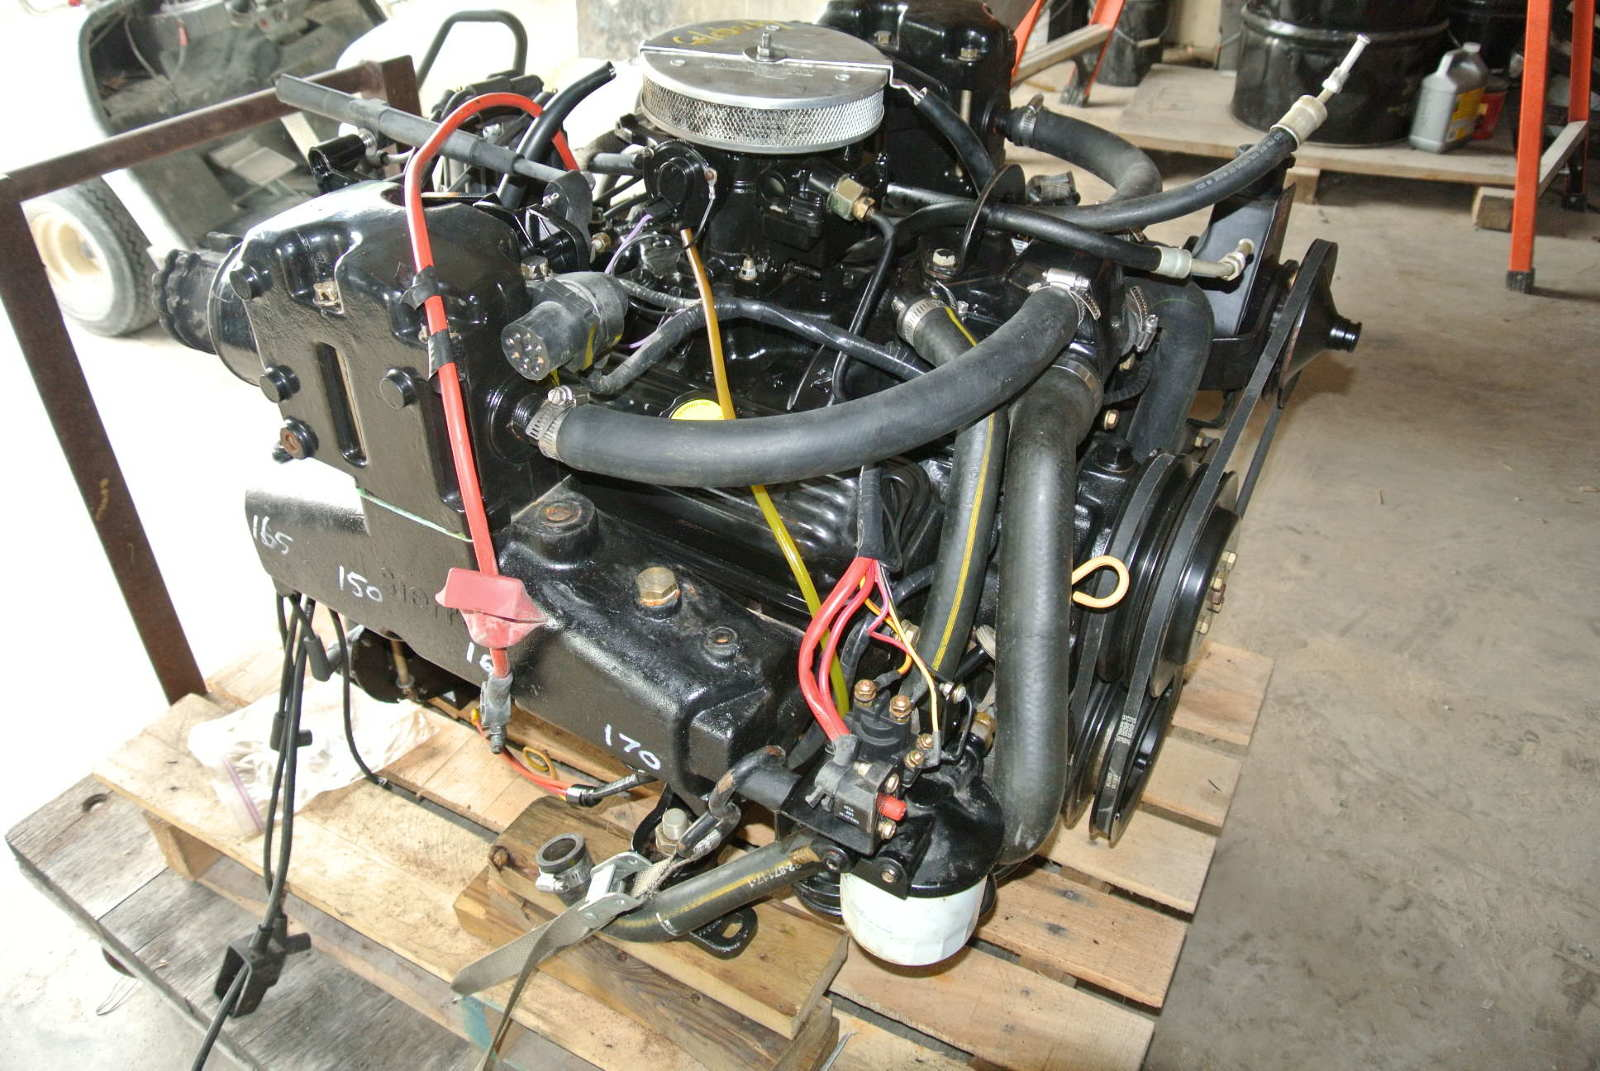 5364 mercruiser 50 engine v8 chevy 305 motor complete plug n go mercruiser 5 0 engine v8 chevy 305 motor complete plug n go  at reclaimingppi.co